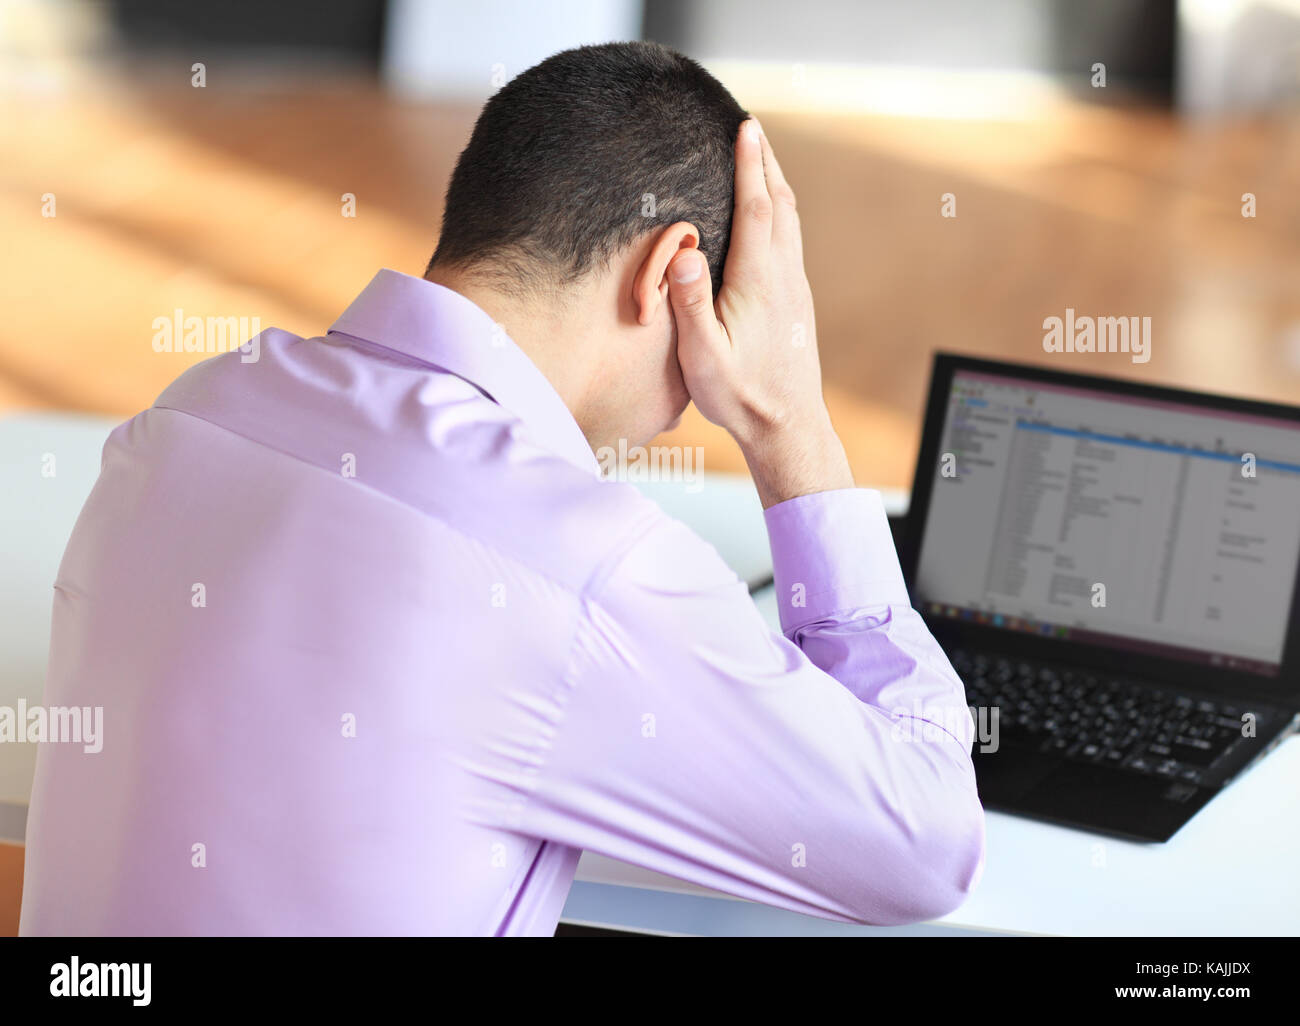 Portrait of stressful tired young businessman at work - Stock Image